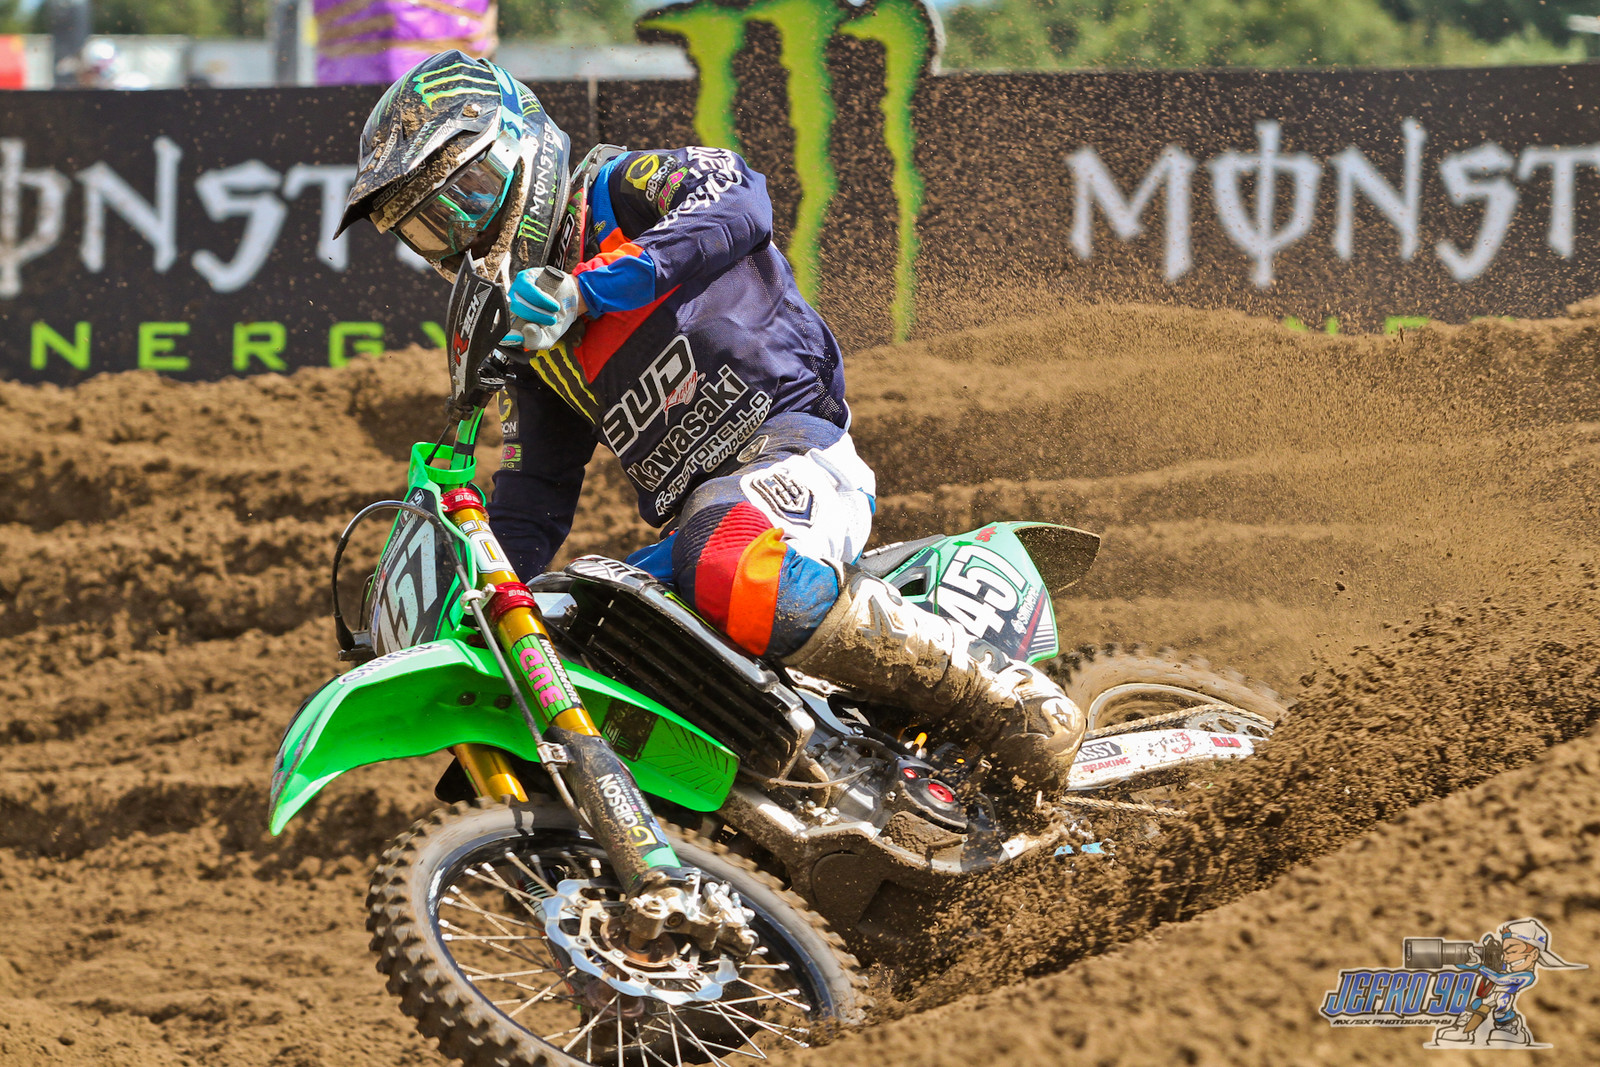 Darian Sanayei - Photo Gallery: MXGP of Limburg - Motocross Pictures - Vital MX